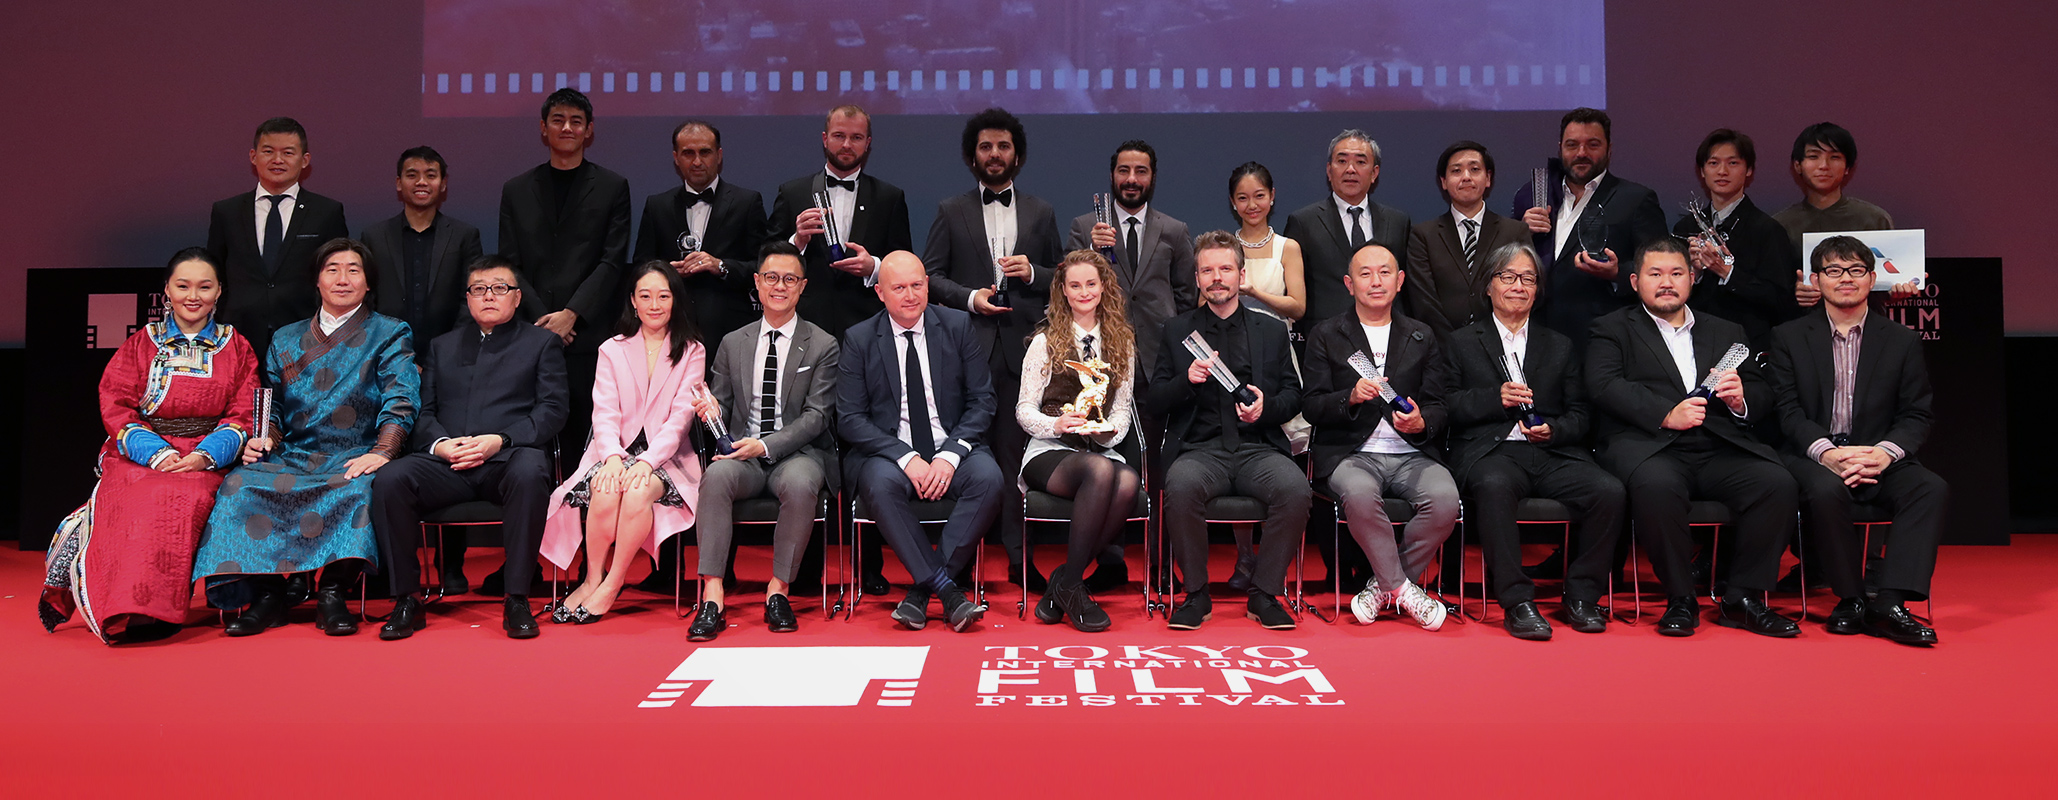 The 32nd Tokyo International Film Festival Award Winners